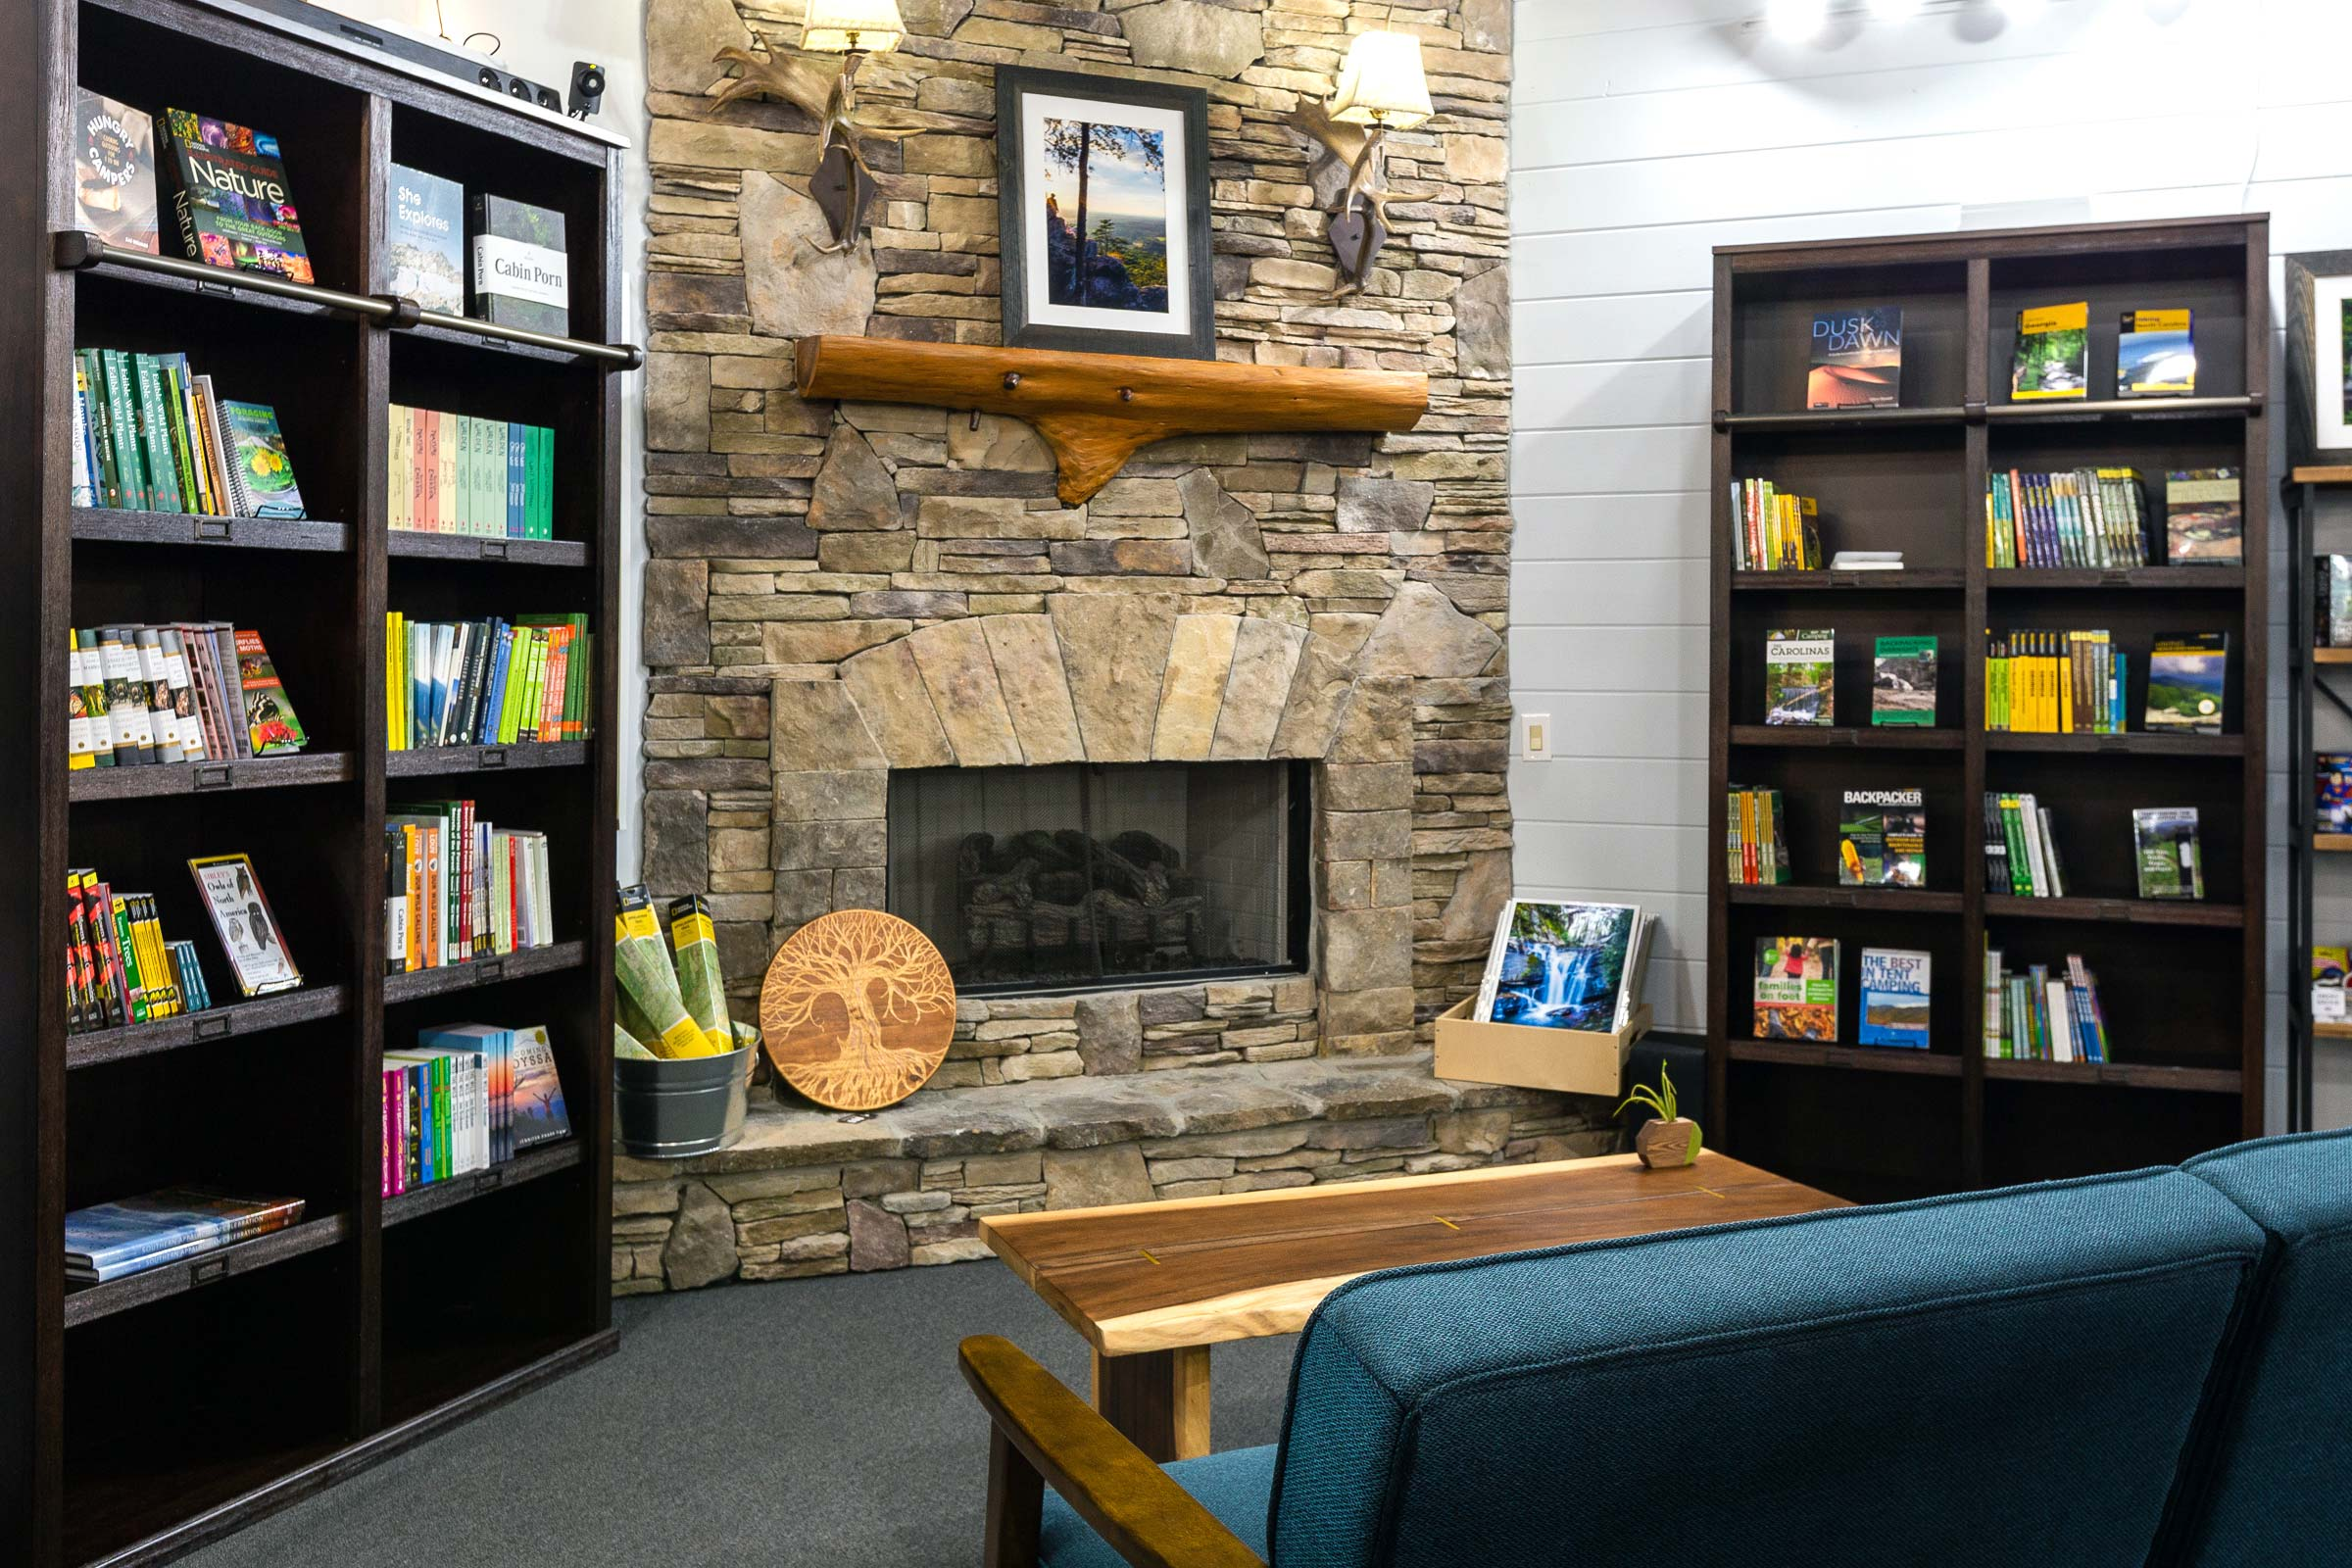 Trailful Outdoor Co - fireplace lounge and outdoor books in the mountains of Hiawassee, Georgia